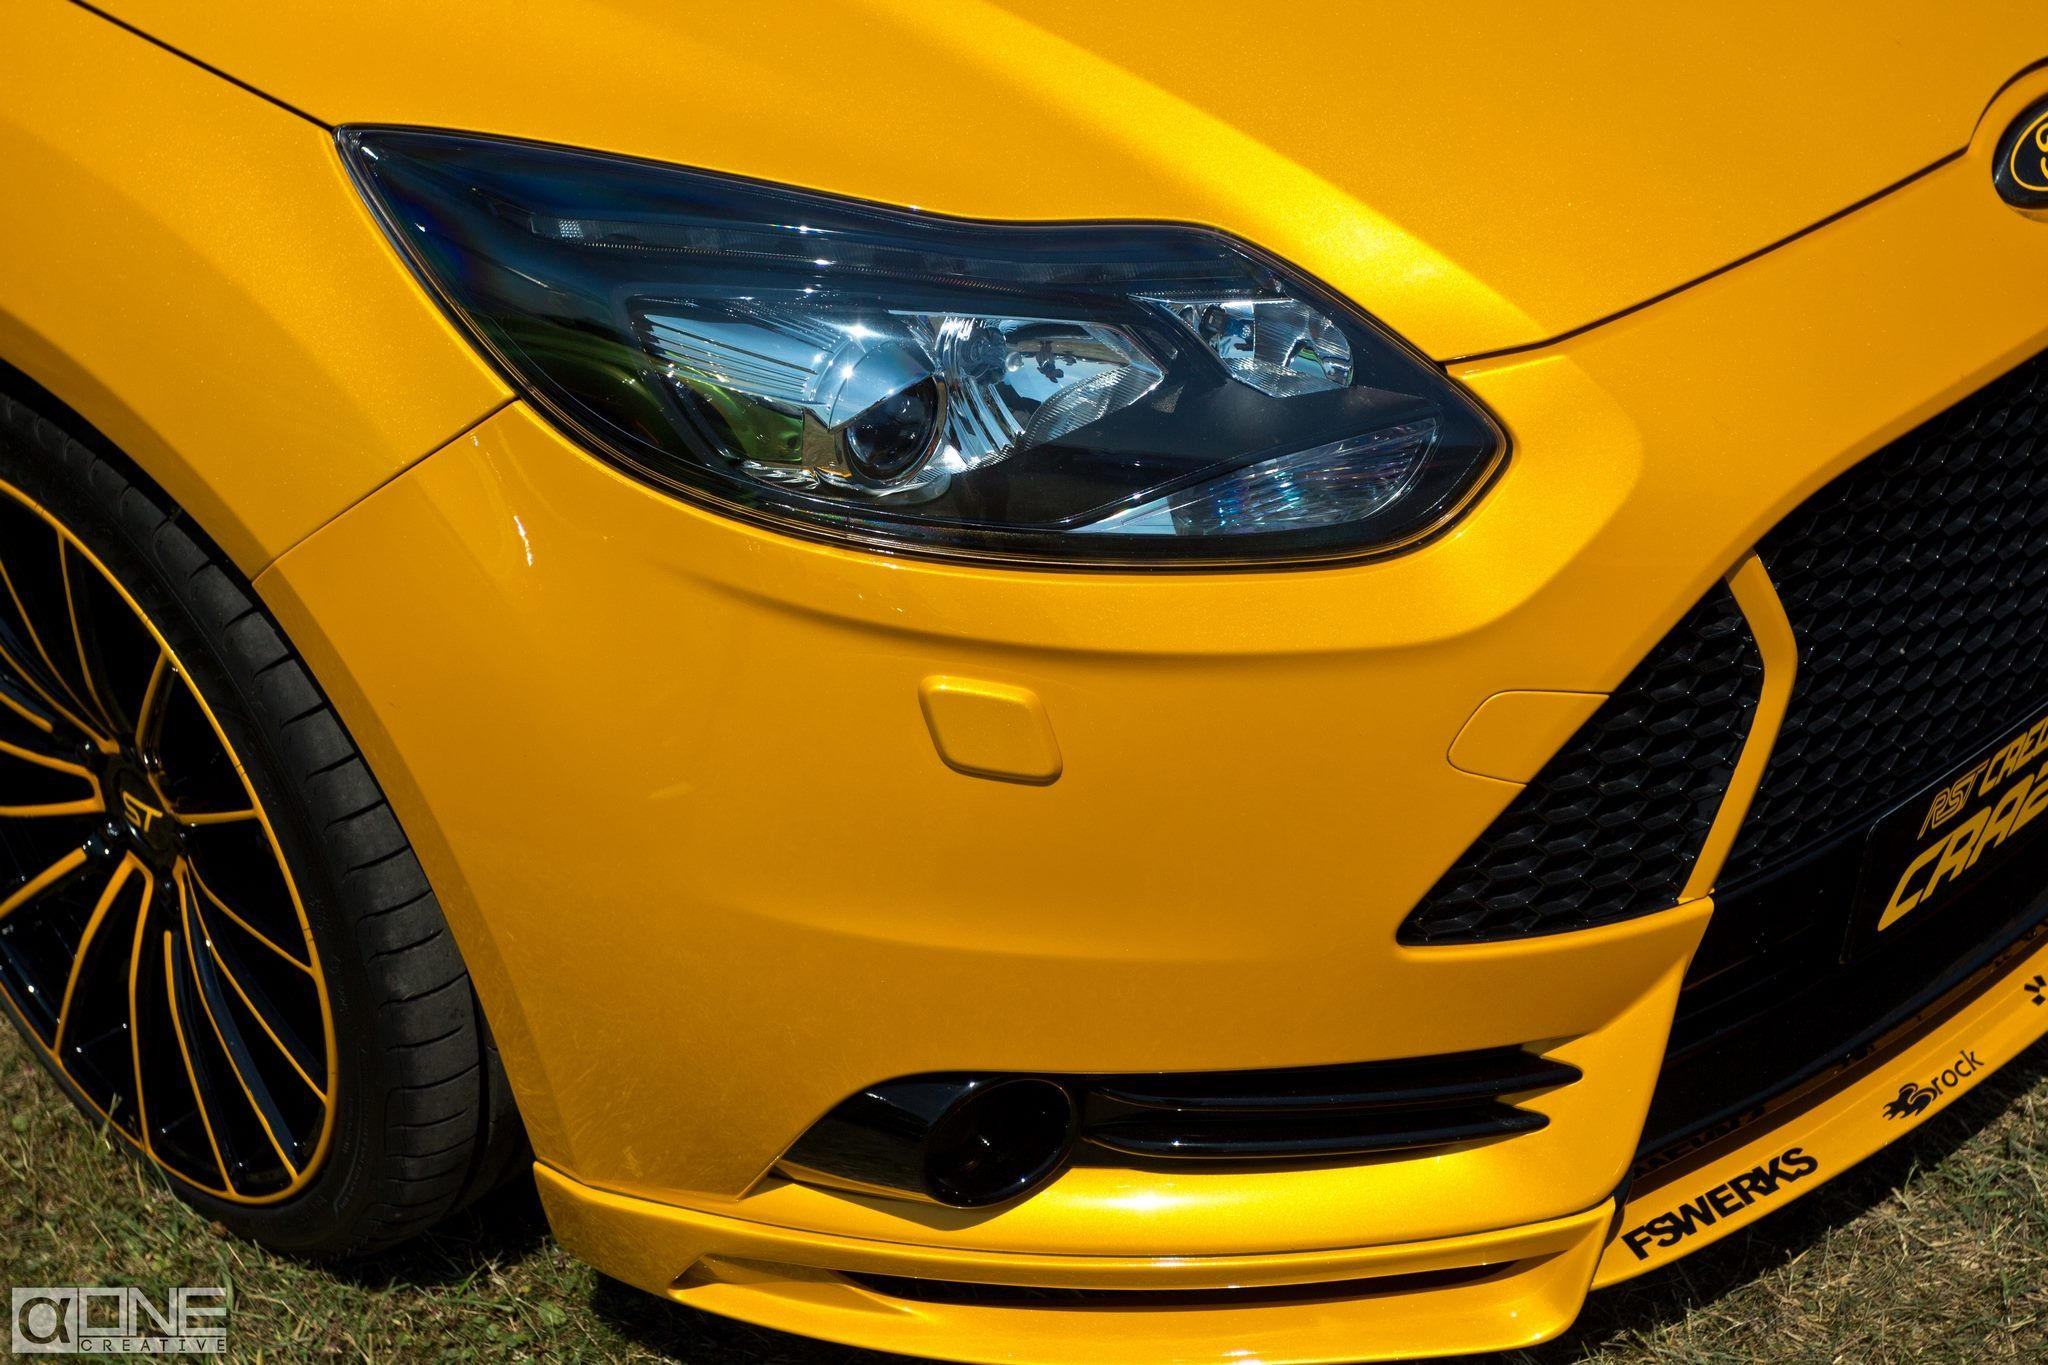 Ford Focus ST 3 tuning, big rims, front bumper tuning